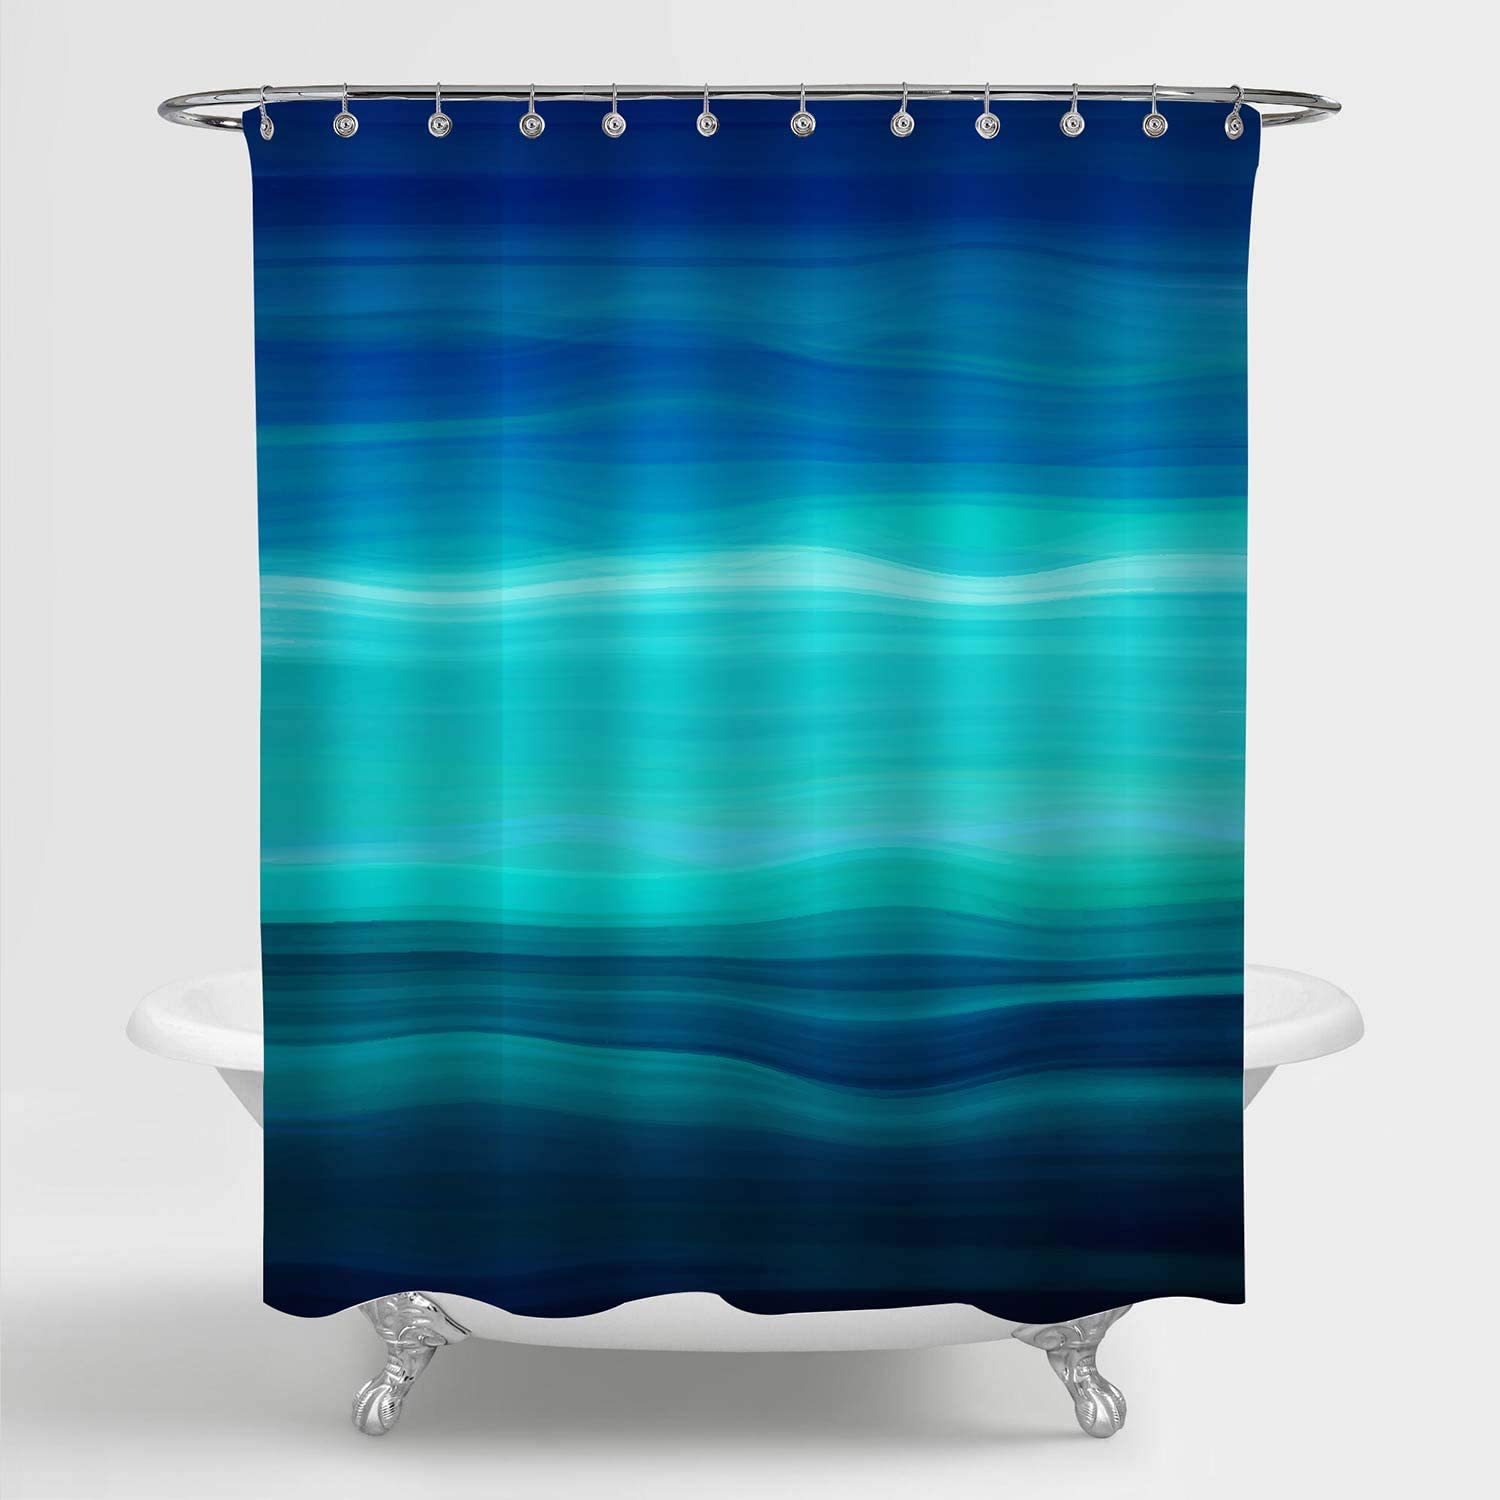 Aqua Blue MitoVilla Blue Green Ombre Striped Shower Curtain 50 W x 78 L Turquoise Teal Abstract Ocean Waves Geometric Art Print Bathroom Accessories for Contemporary Home Decorations Navy